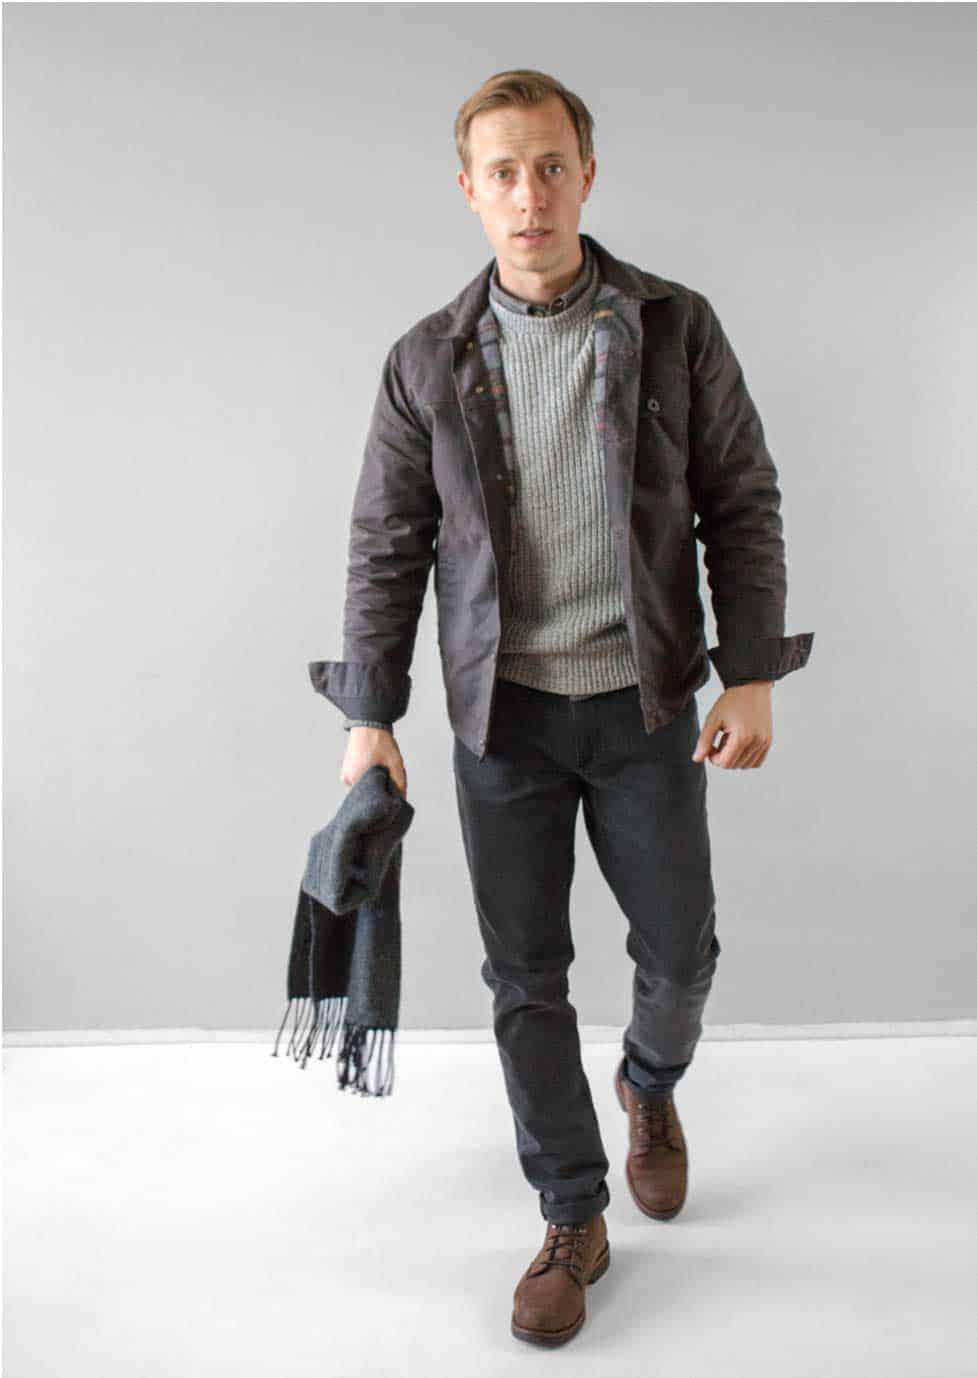 guy fashion brown trucker jacket gray sweater charcoal jeans gray scarf brown boots gray wall